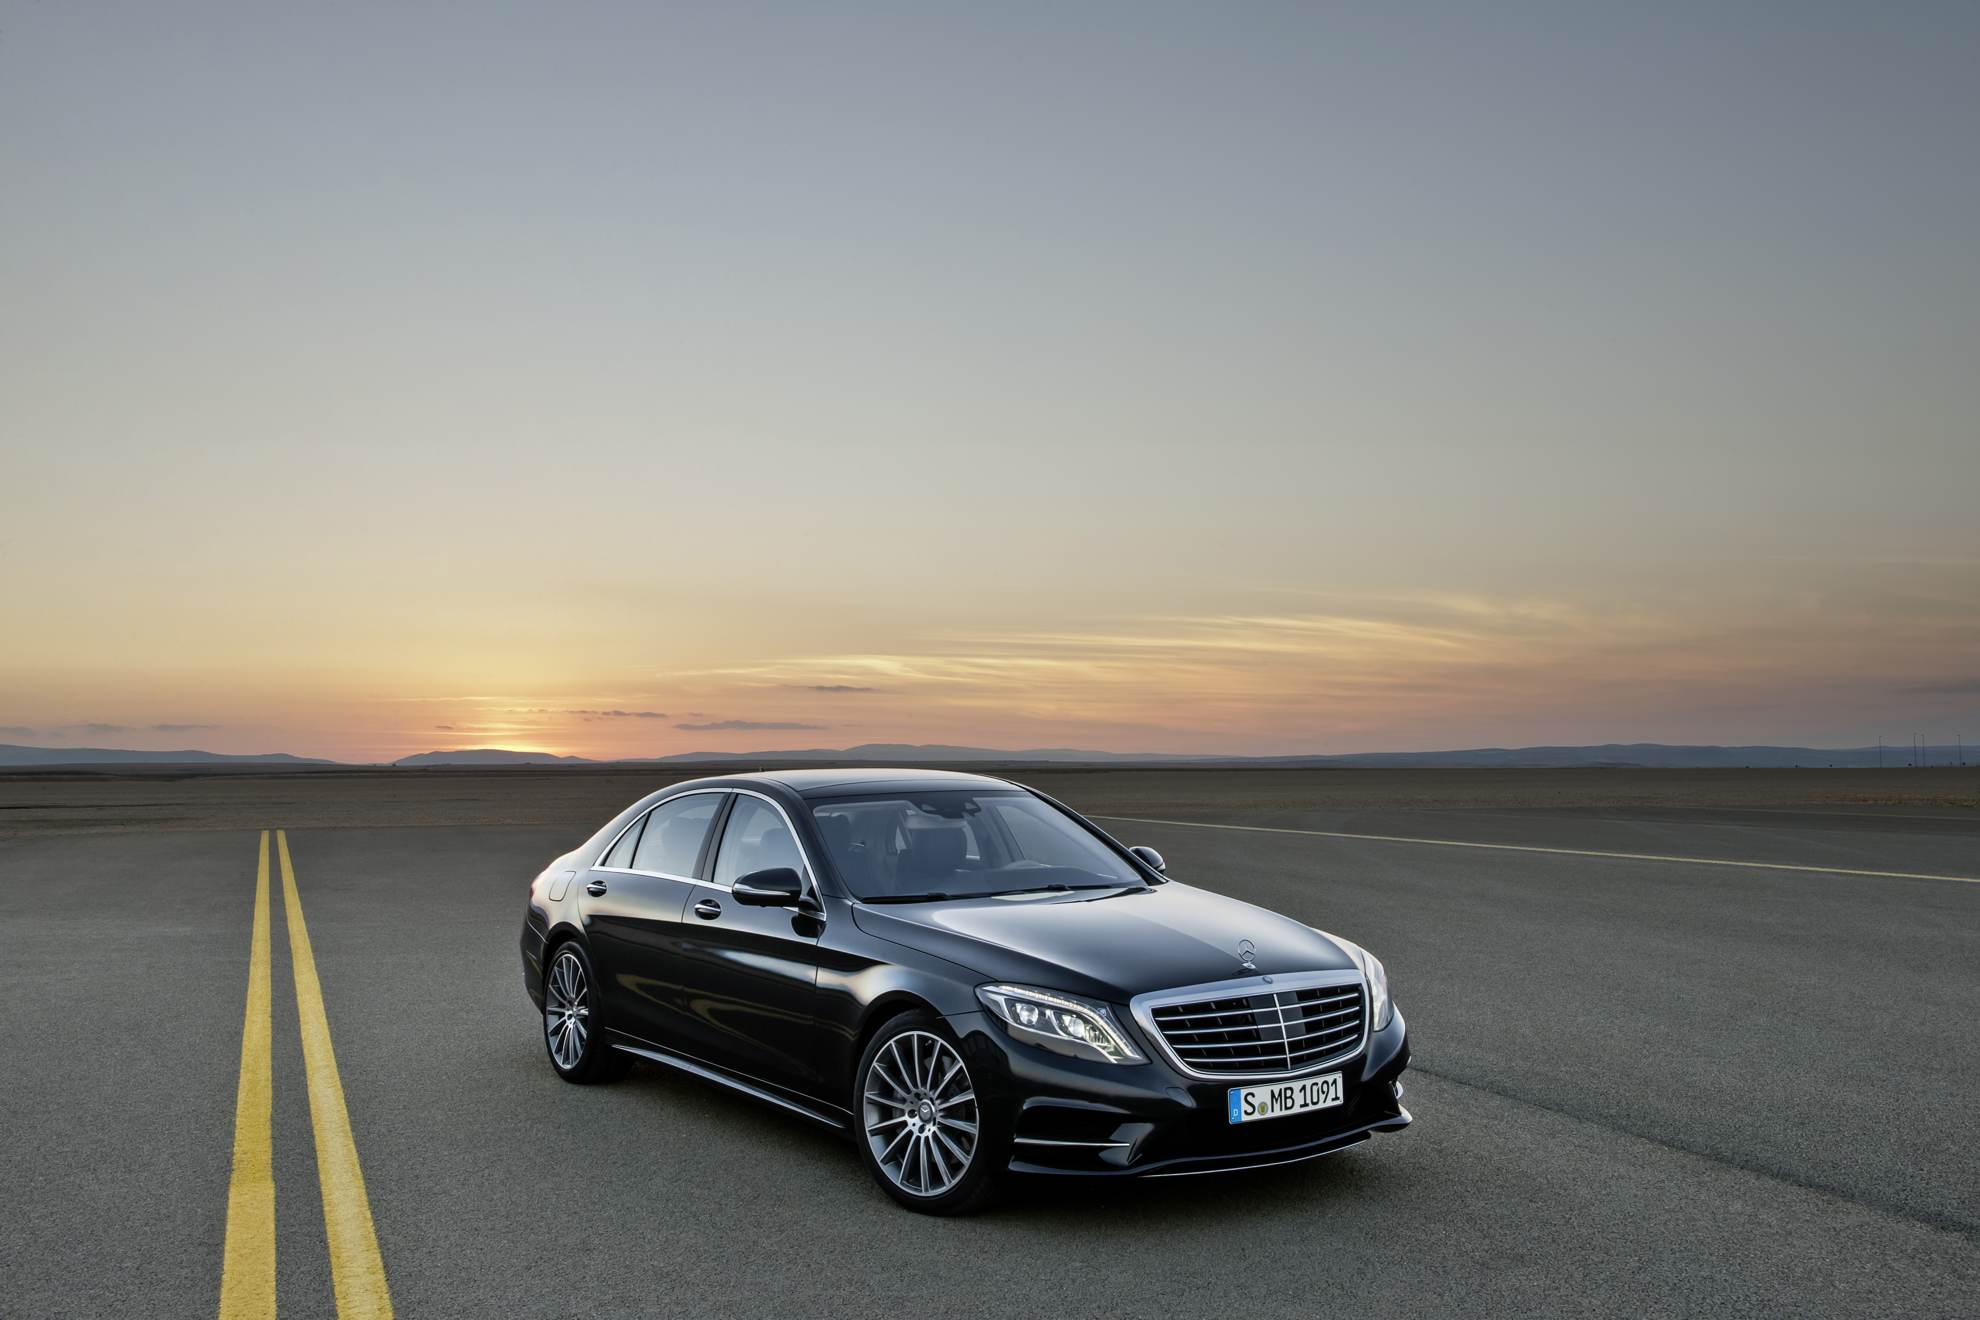 The new mercedes benz s class at uk car dealerships for Mercedes benz car dealerships